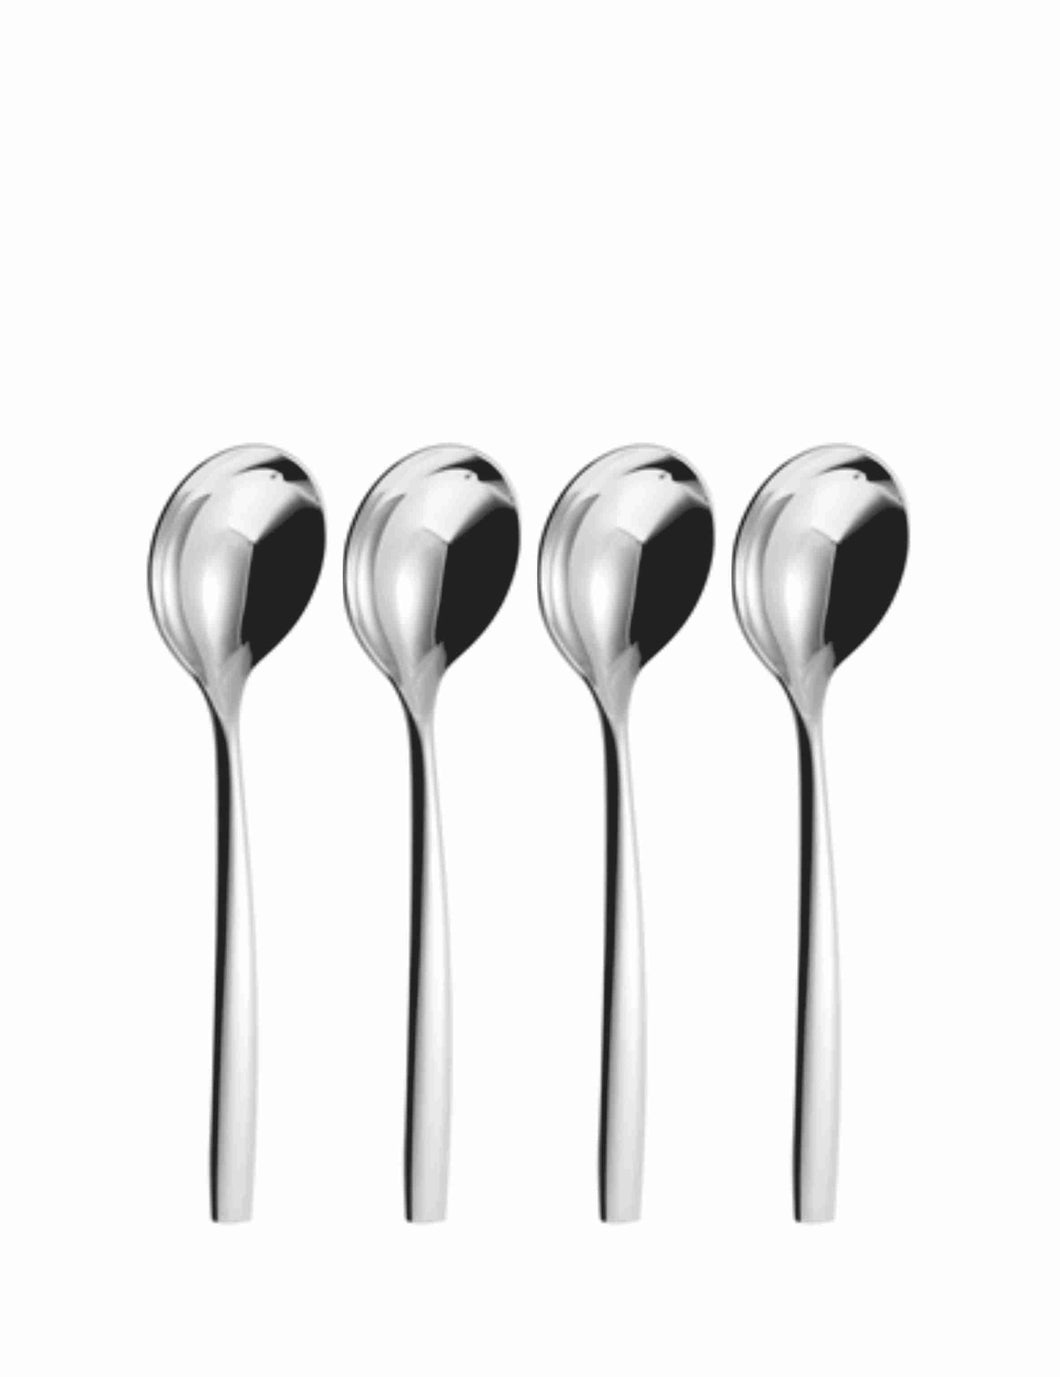 SAVADO - Soup Spoon, 4pcs